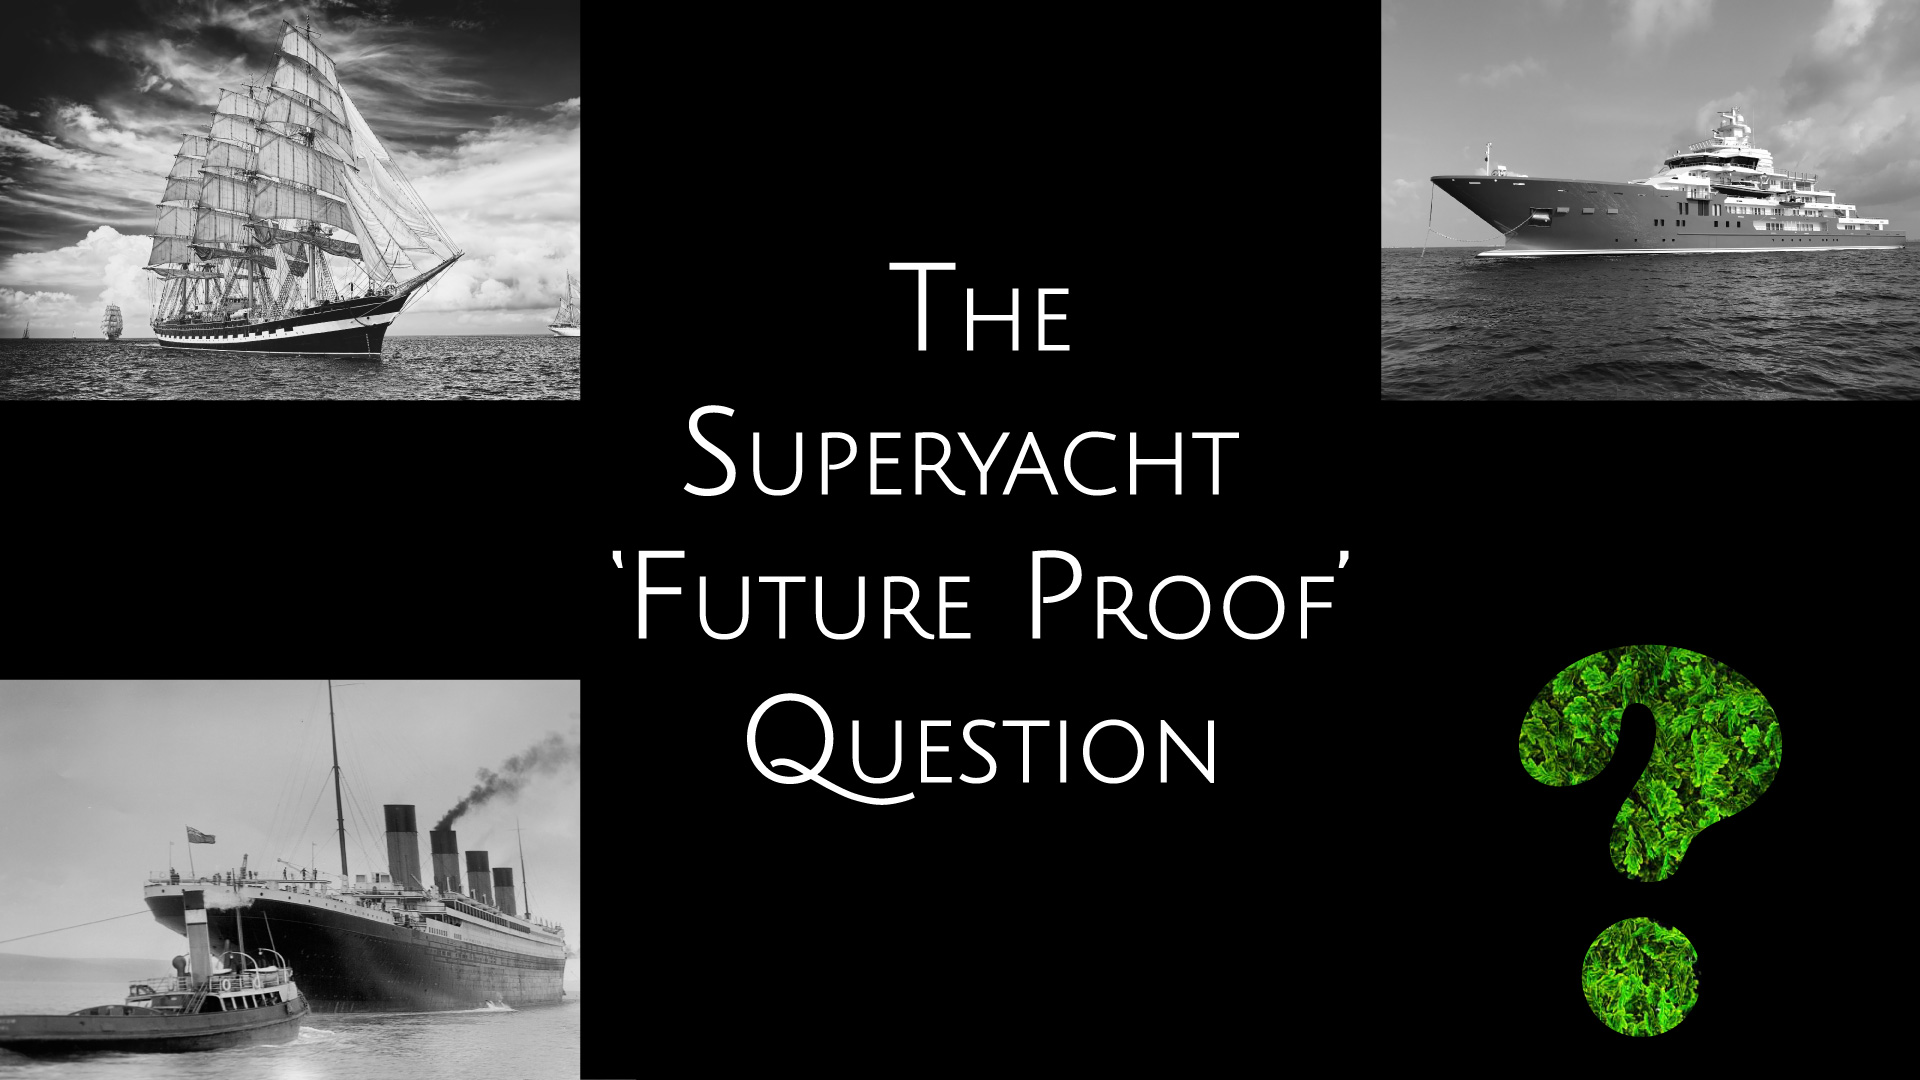 sail coal diesel ships what's next for superyachts